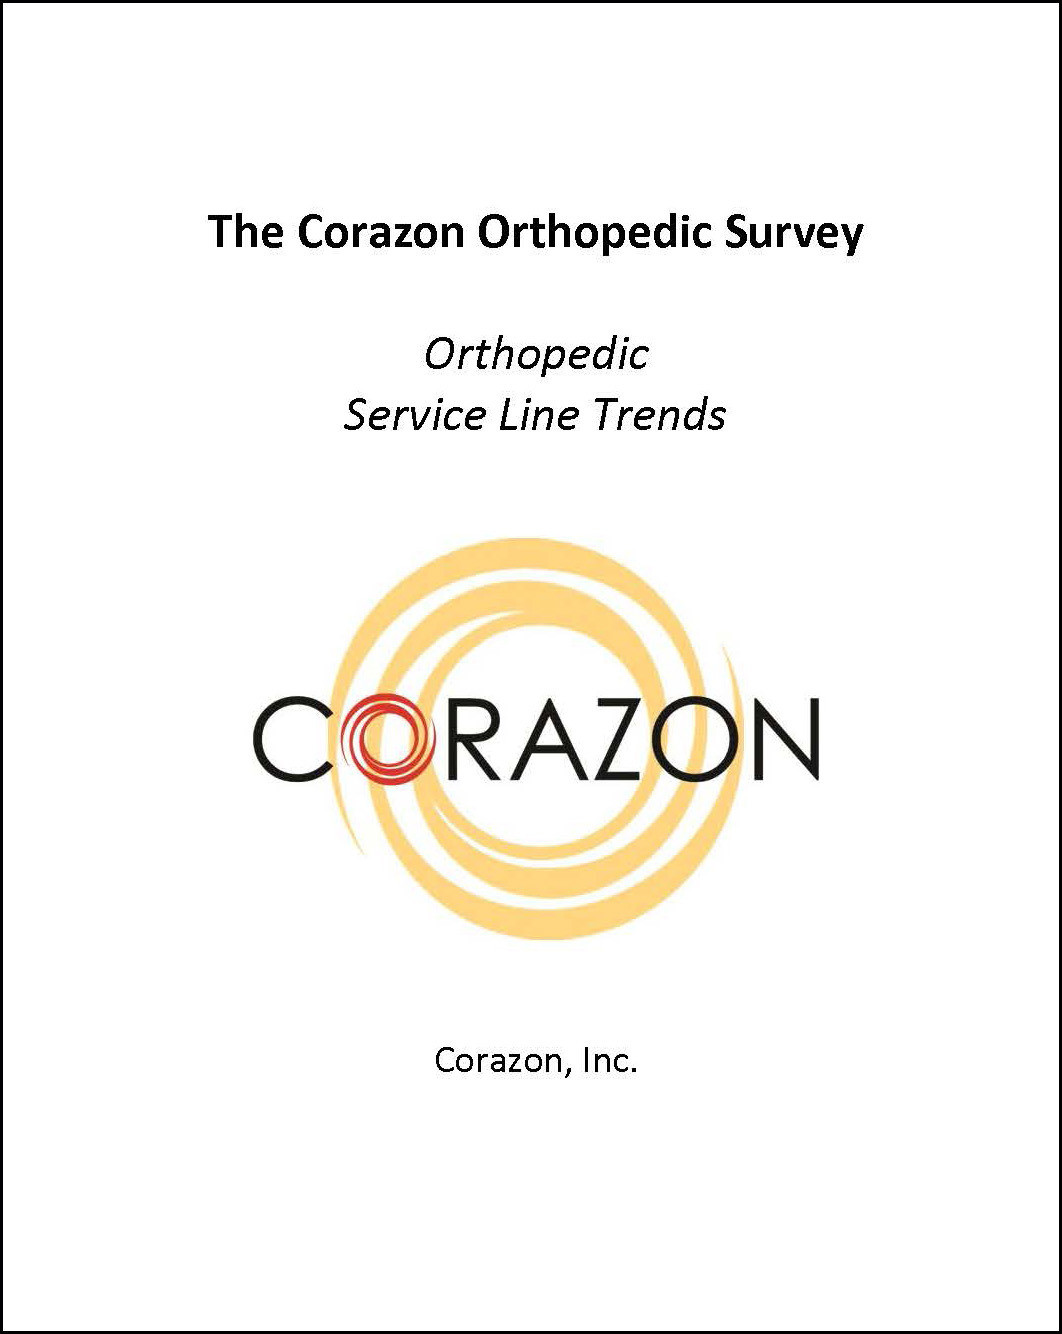 Orthopedic Service Line Trends Survey Report